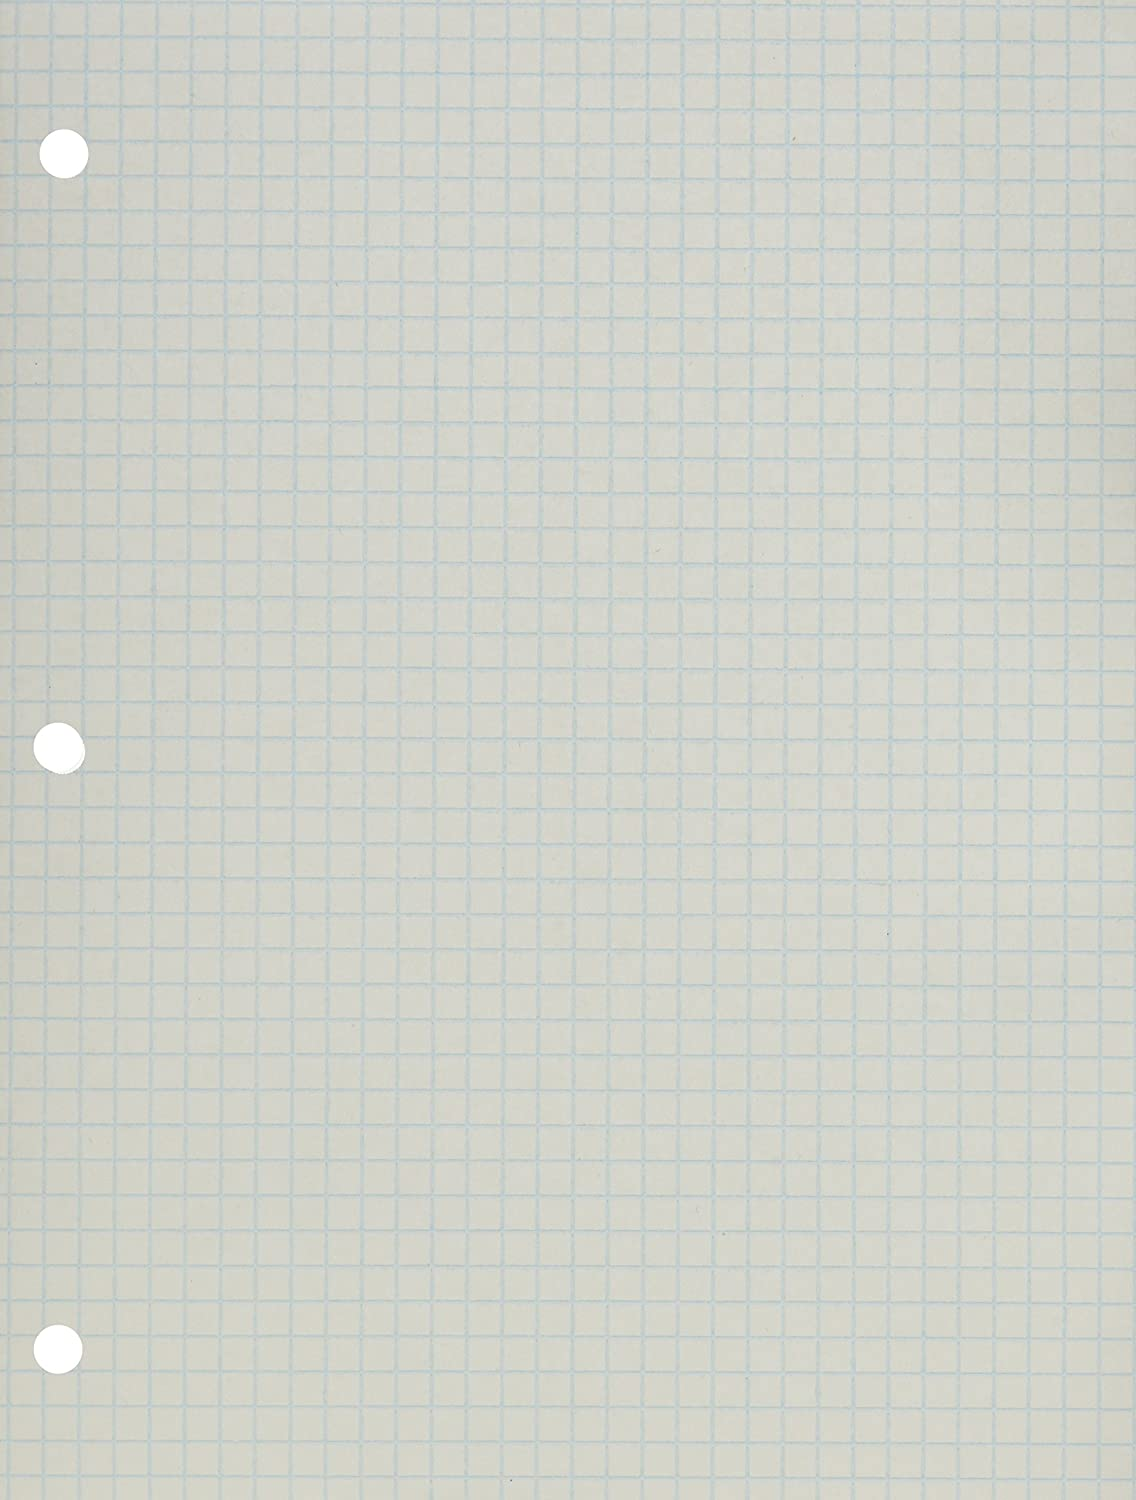 School Smart 86667 2 Sided 3 Hole Punched 1/4 in Rule Graph Paper - 8 1/2 in x 11 - Pack of 500 - White School Specialty 086667